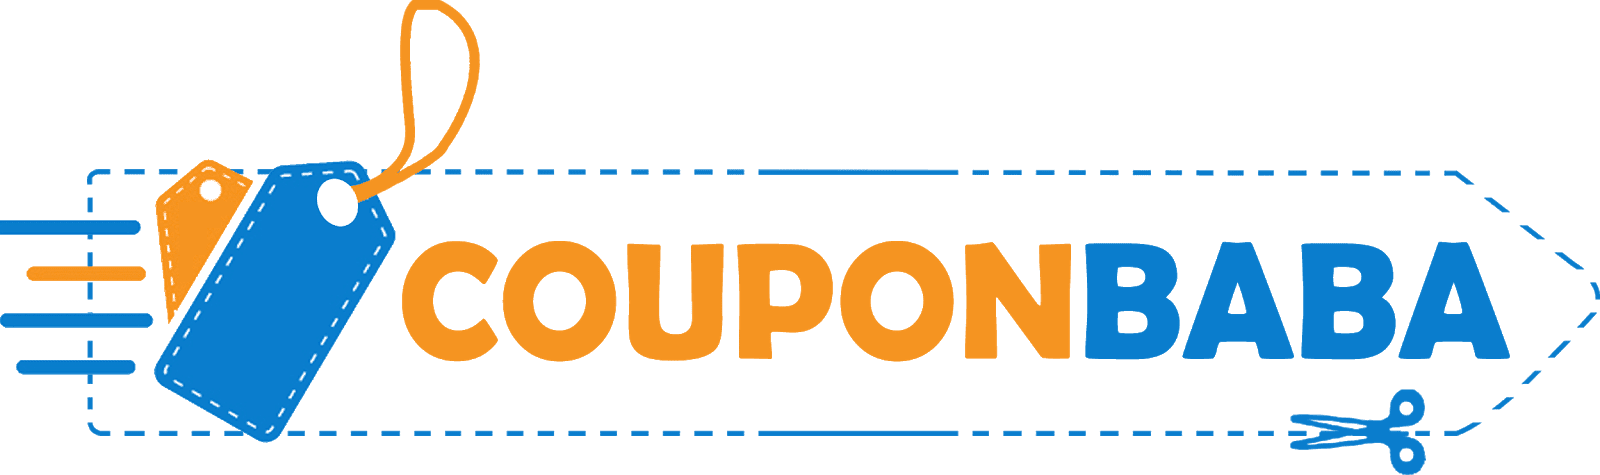 CouponBaba